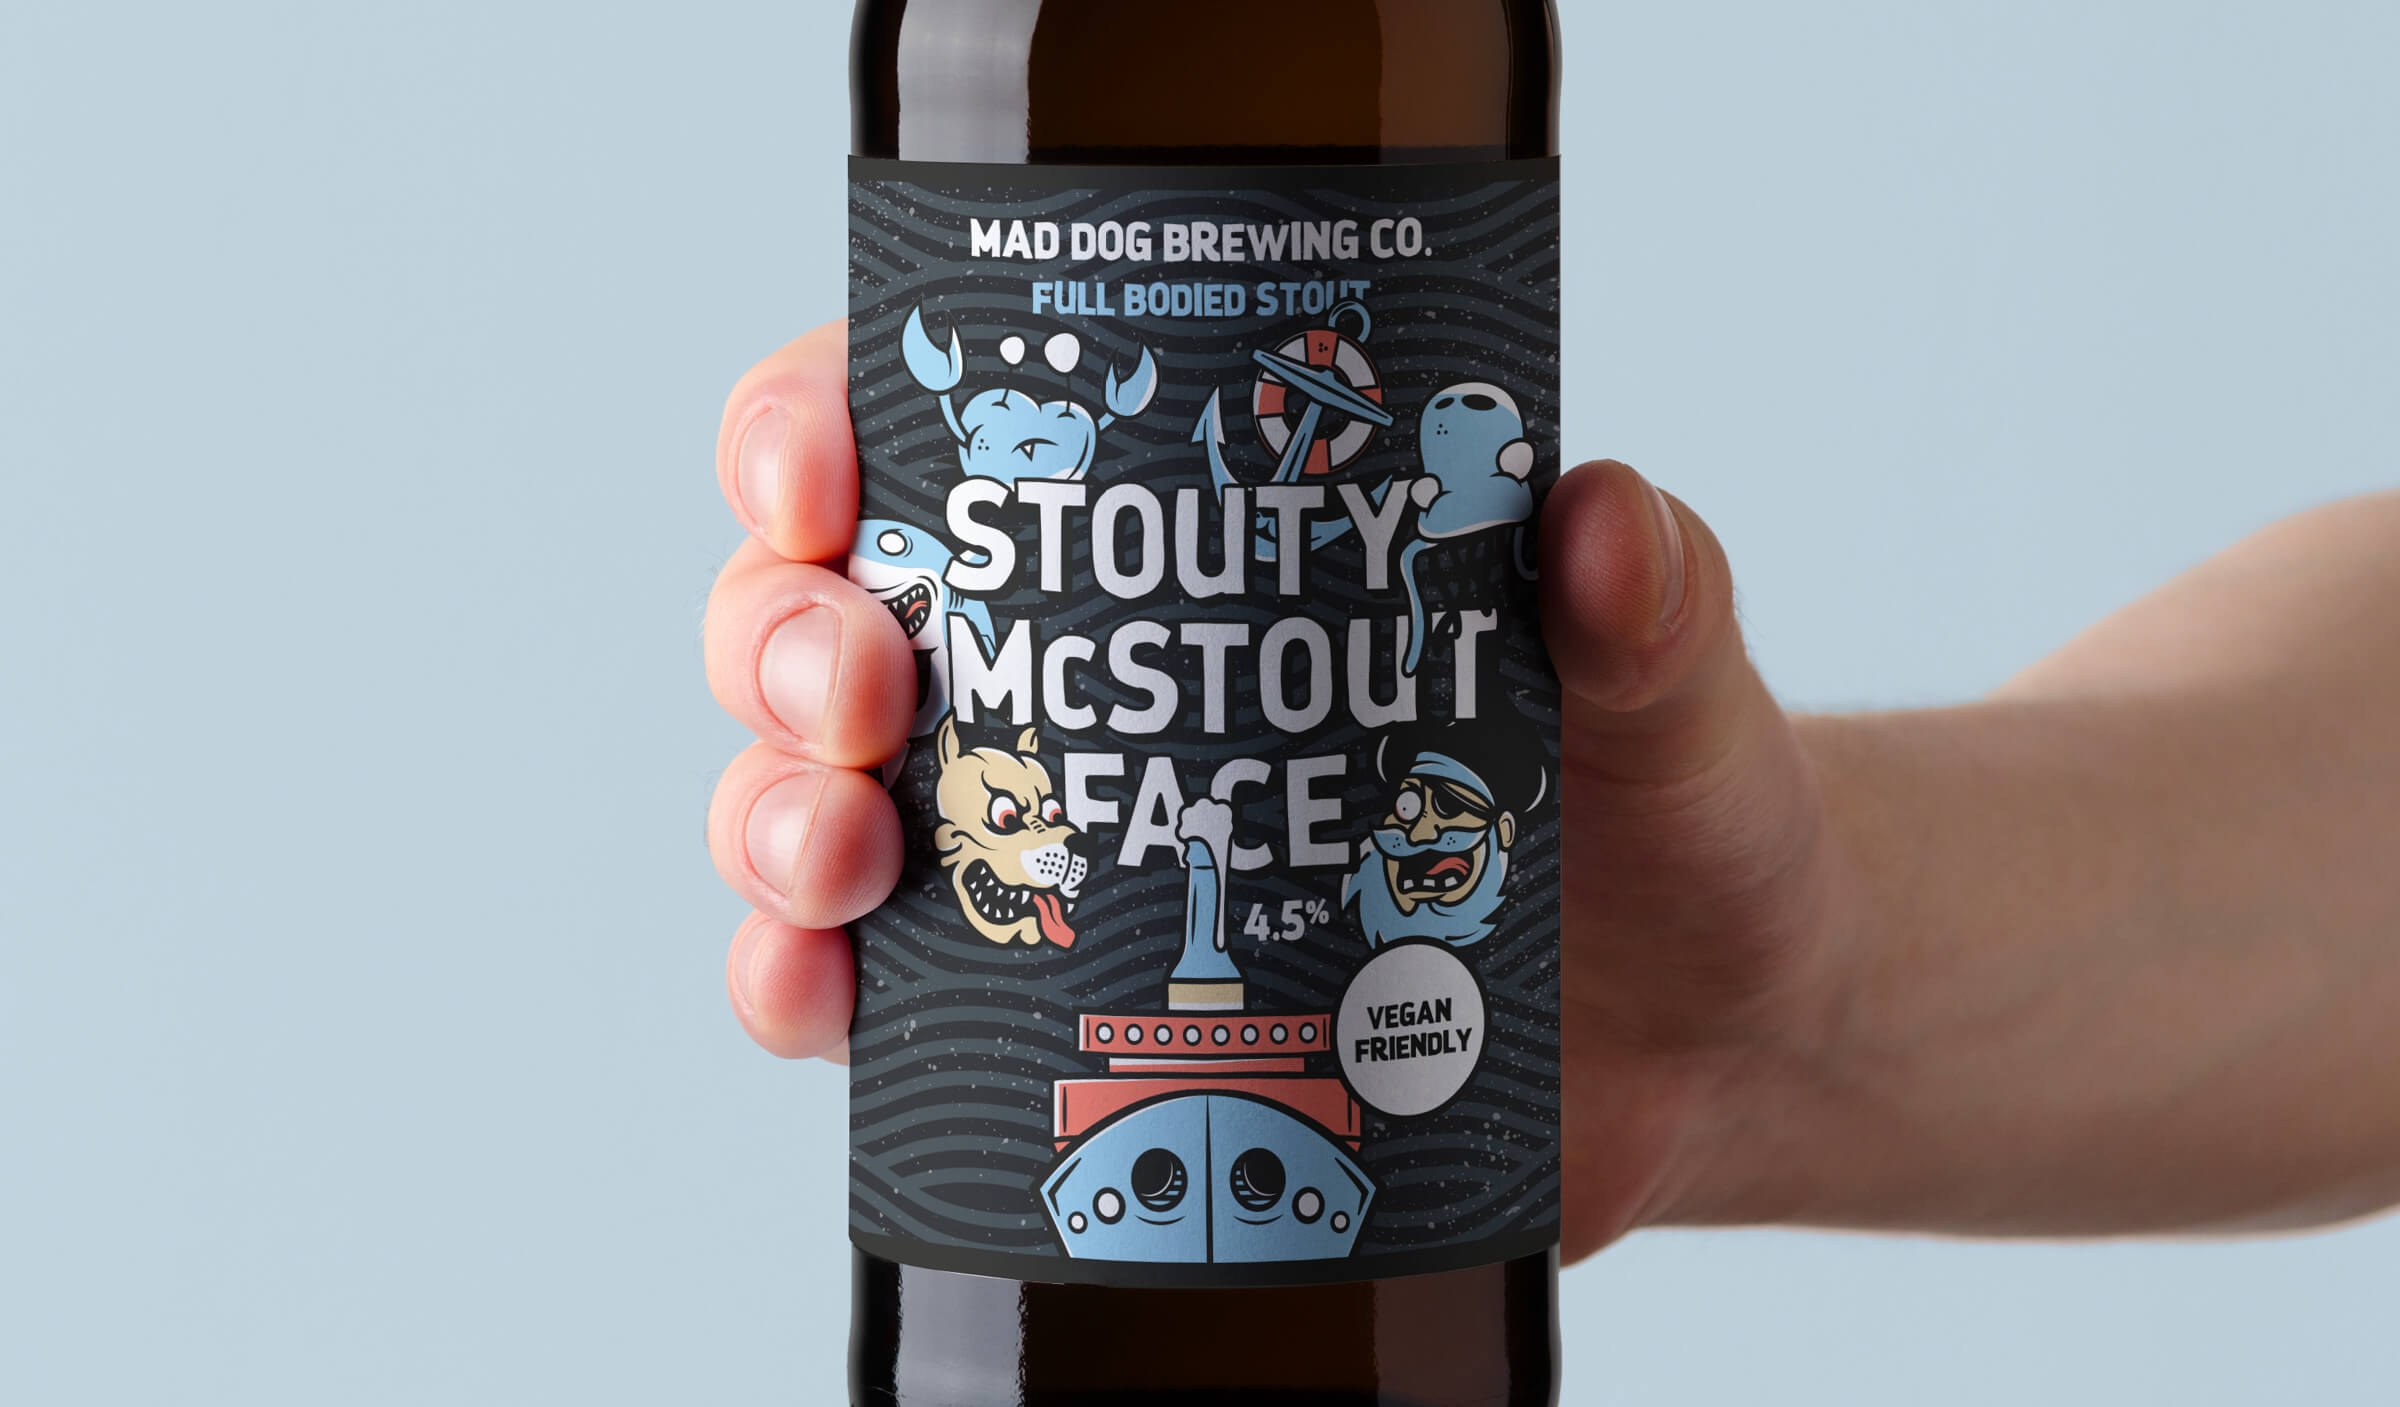 Illustrated branding and packaging design for Mad Dog Brewing Co - a craft ales producer based in south wales